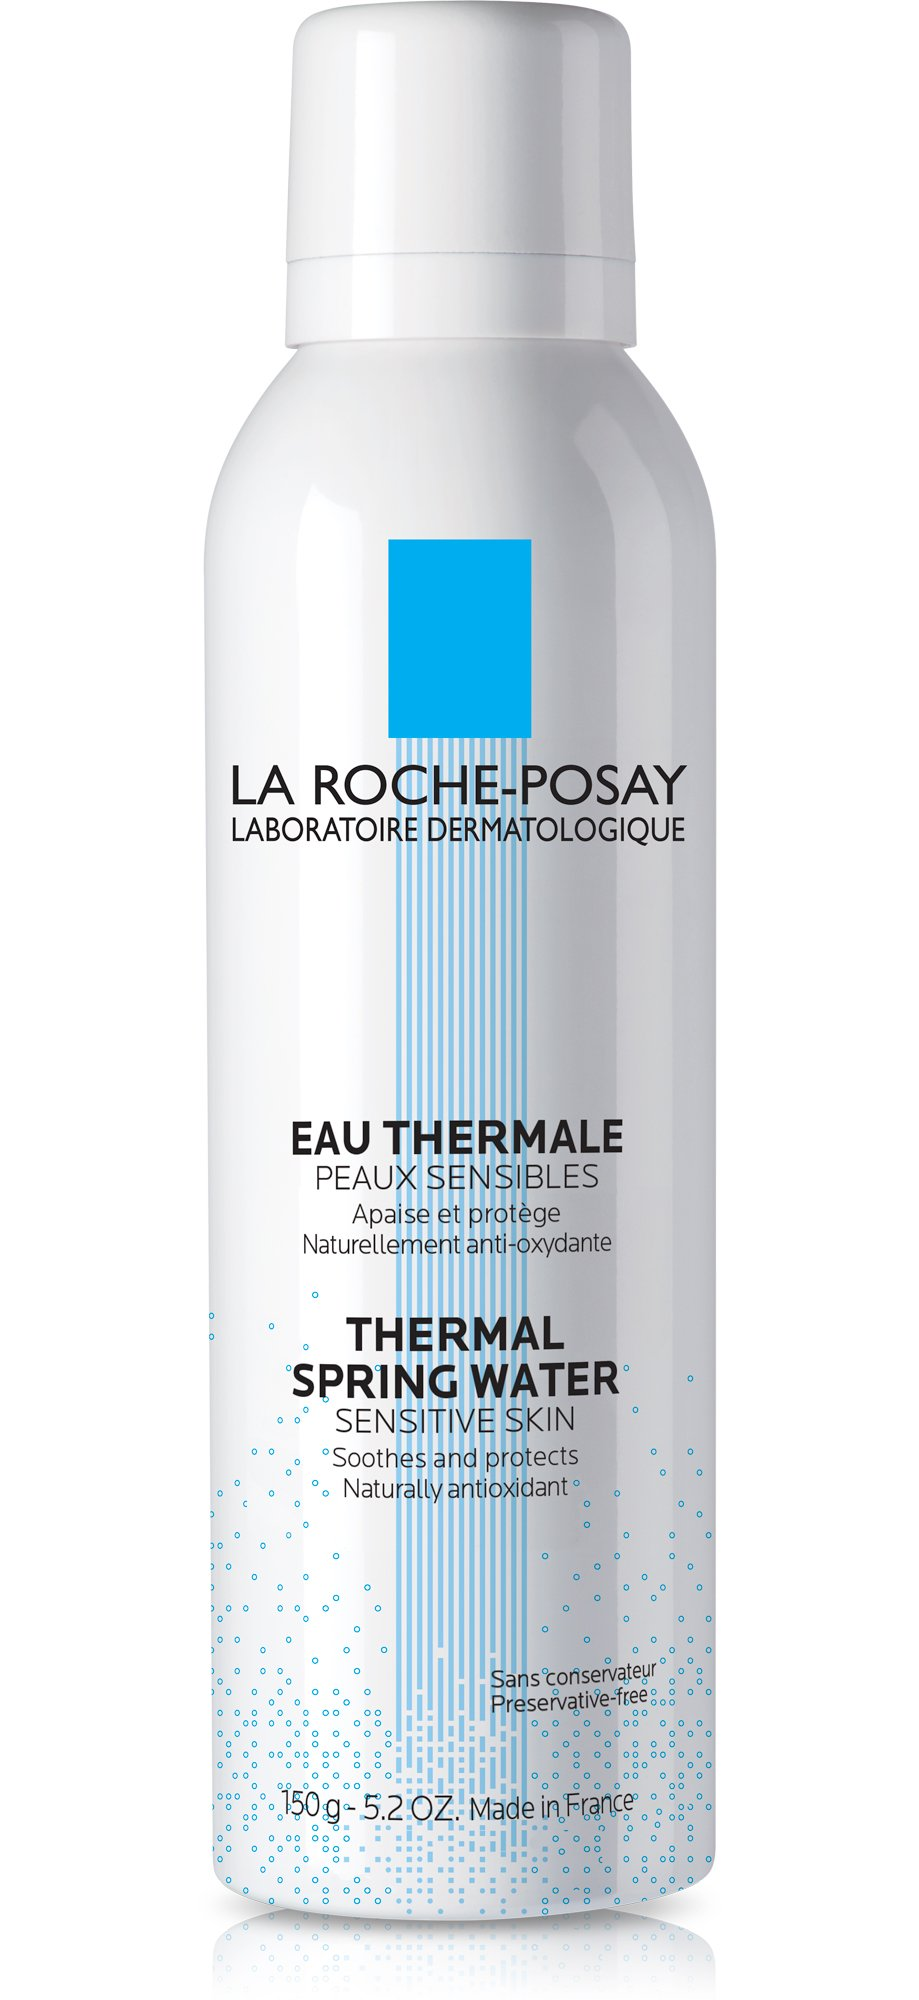 la roche posay cicaplast baume b5 multi purpose balm for hands face body with. Black Bedroom Furniture Sets. Home Design Ideas